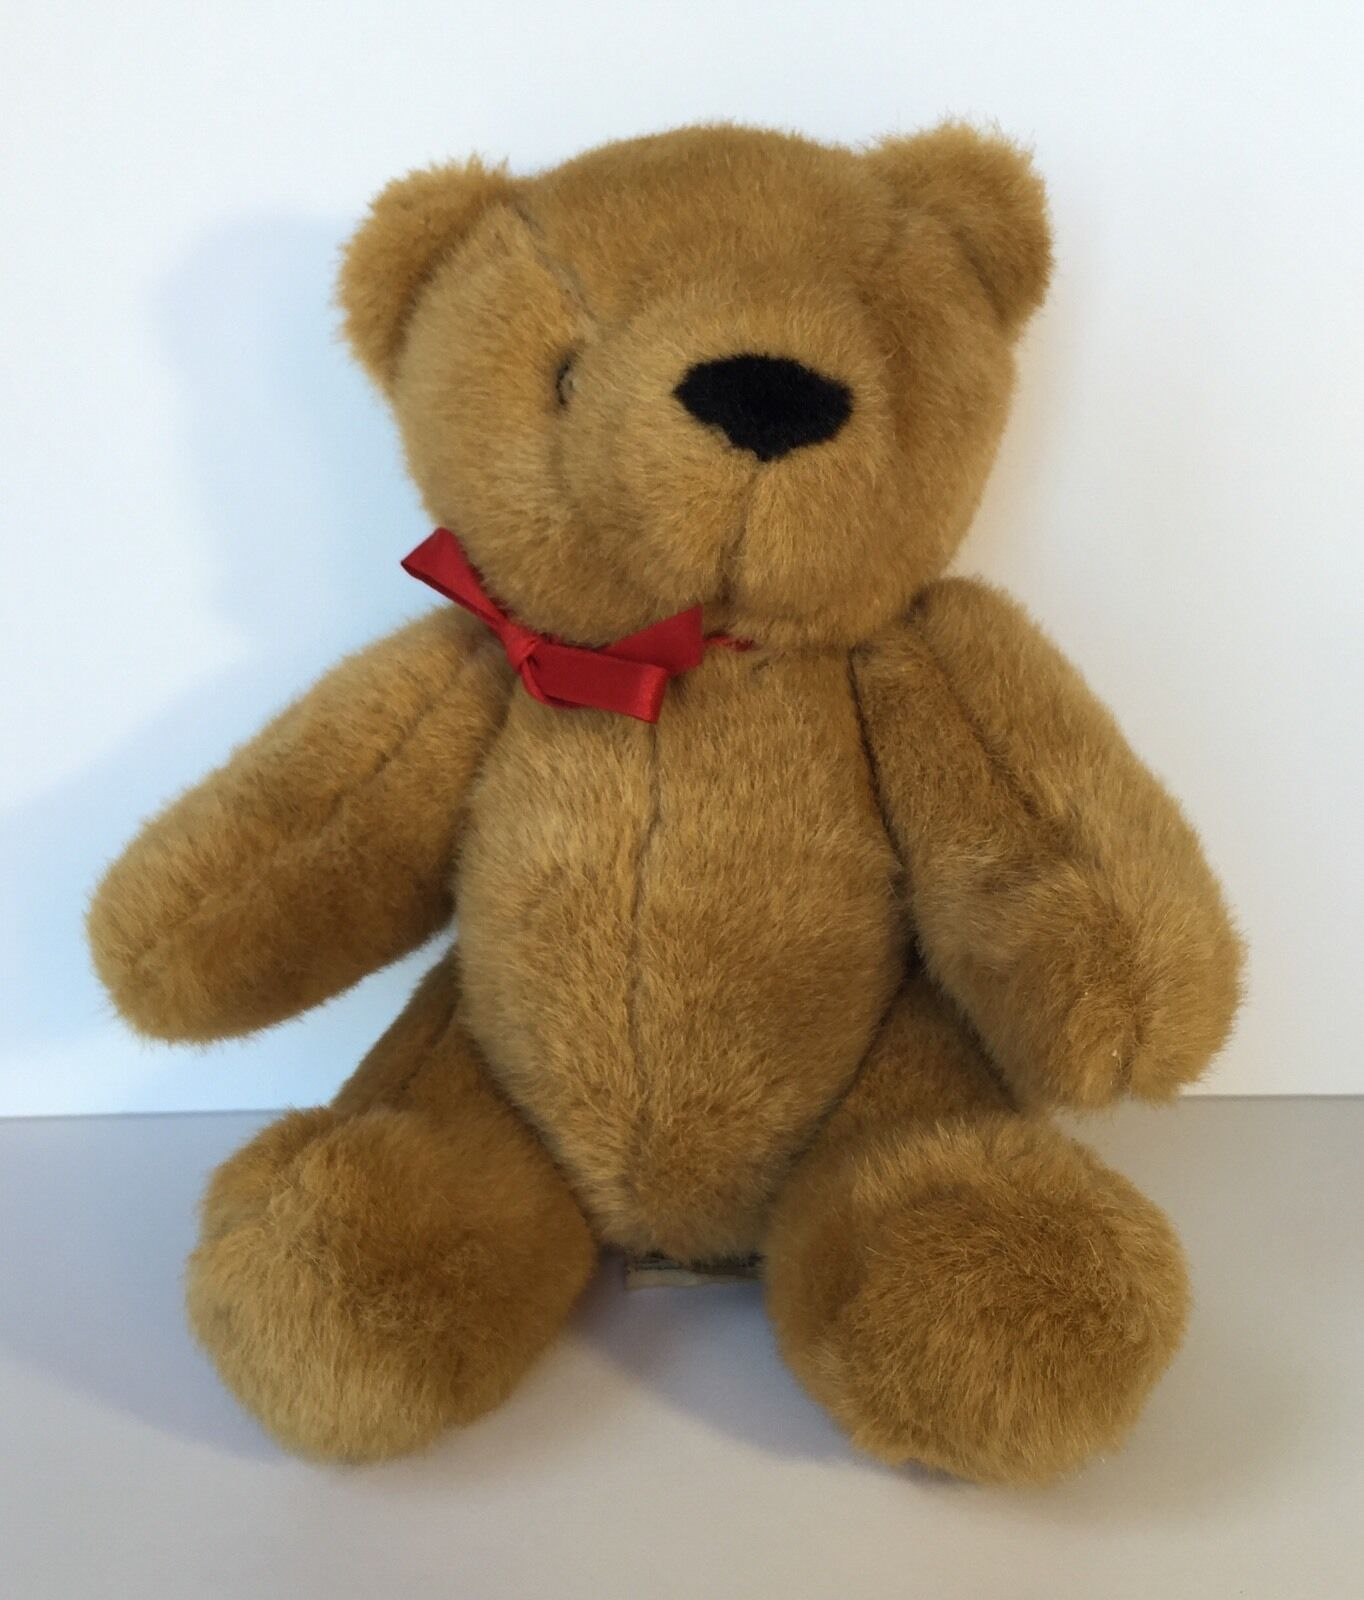 Vintage IKEA Sweden Braun Teddy Bear ROT Ribbon Jointed Plush